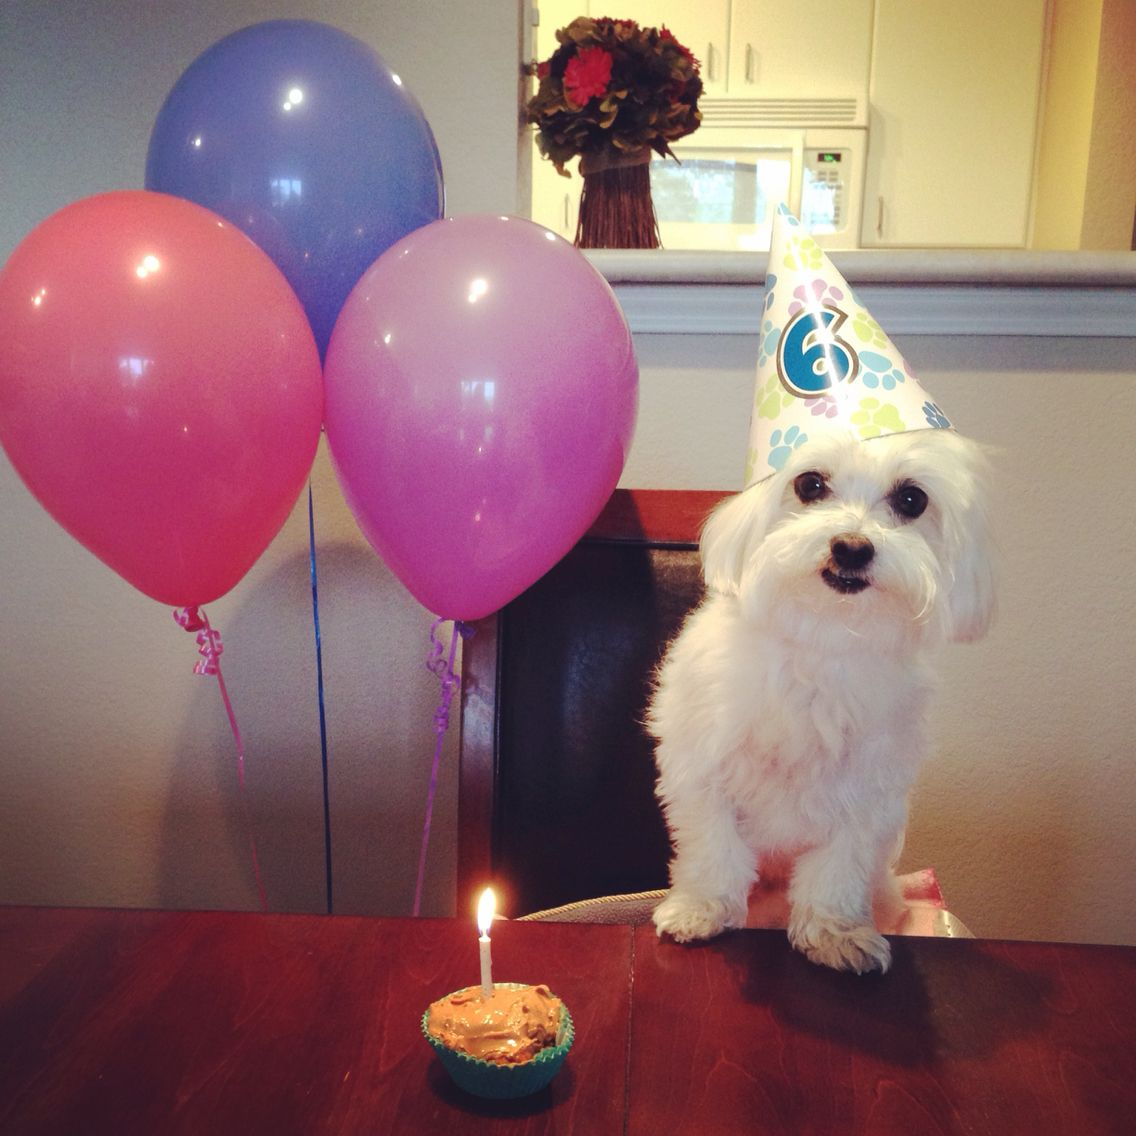 I M Six Today Now Blow Out That Scary Candle So I Can Eat My Cupcake Scary Candles Teacup Puppies Maltese Maltese Puppy